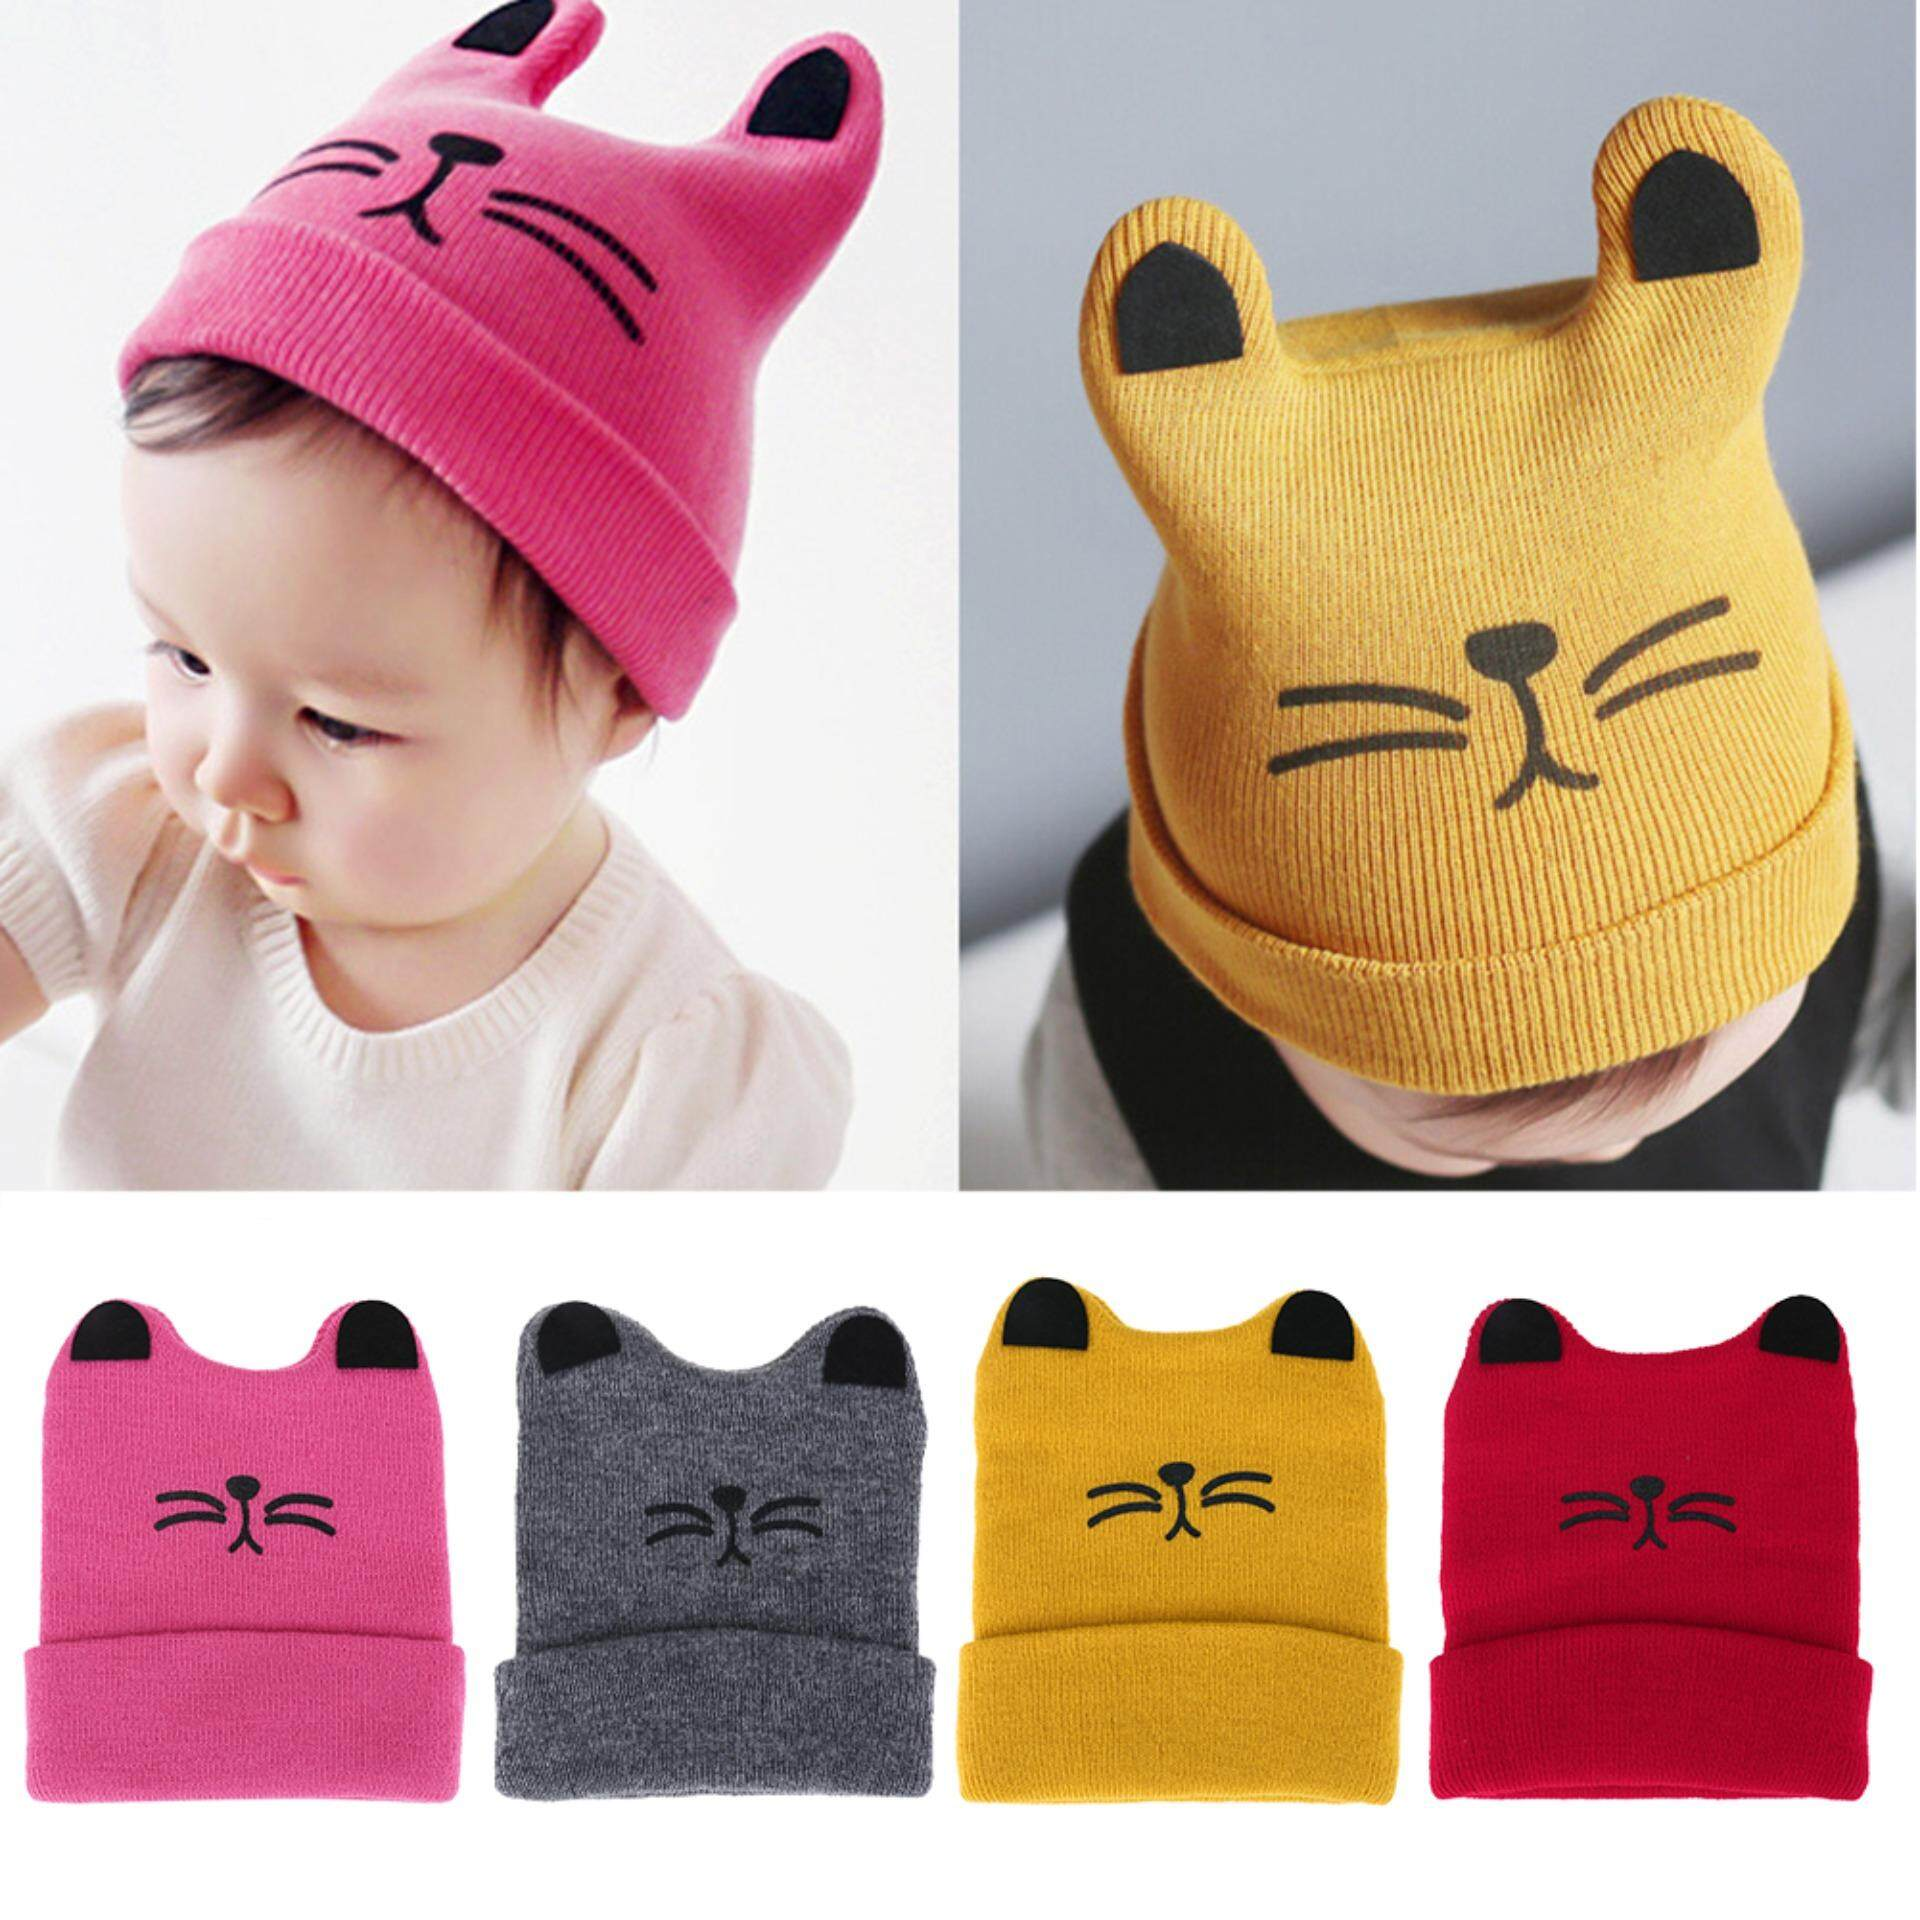 01959828c30b74 DomybestShop Baby Fashion Hats Newborn Cat Ear Hats Autumn Winter Boys  Girls Cartoon Knitting Cap